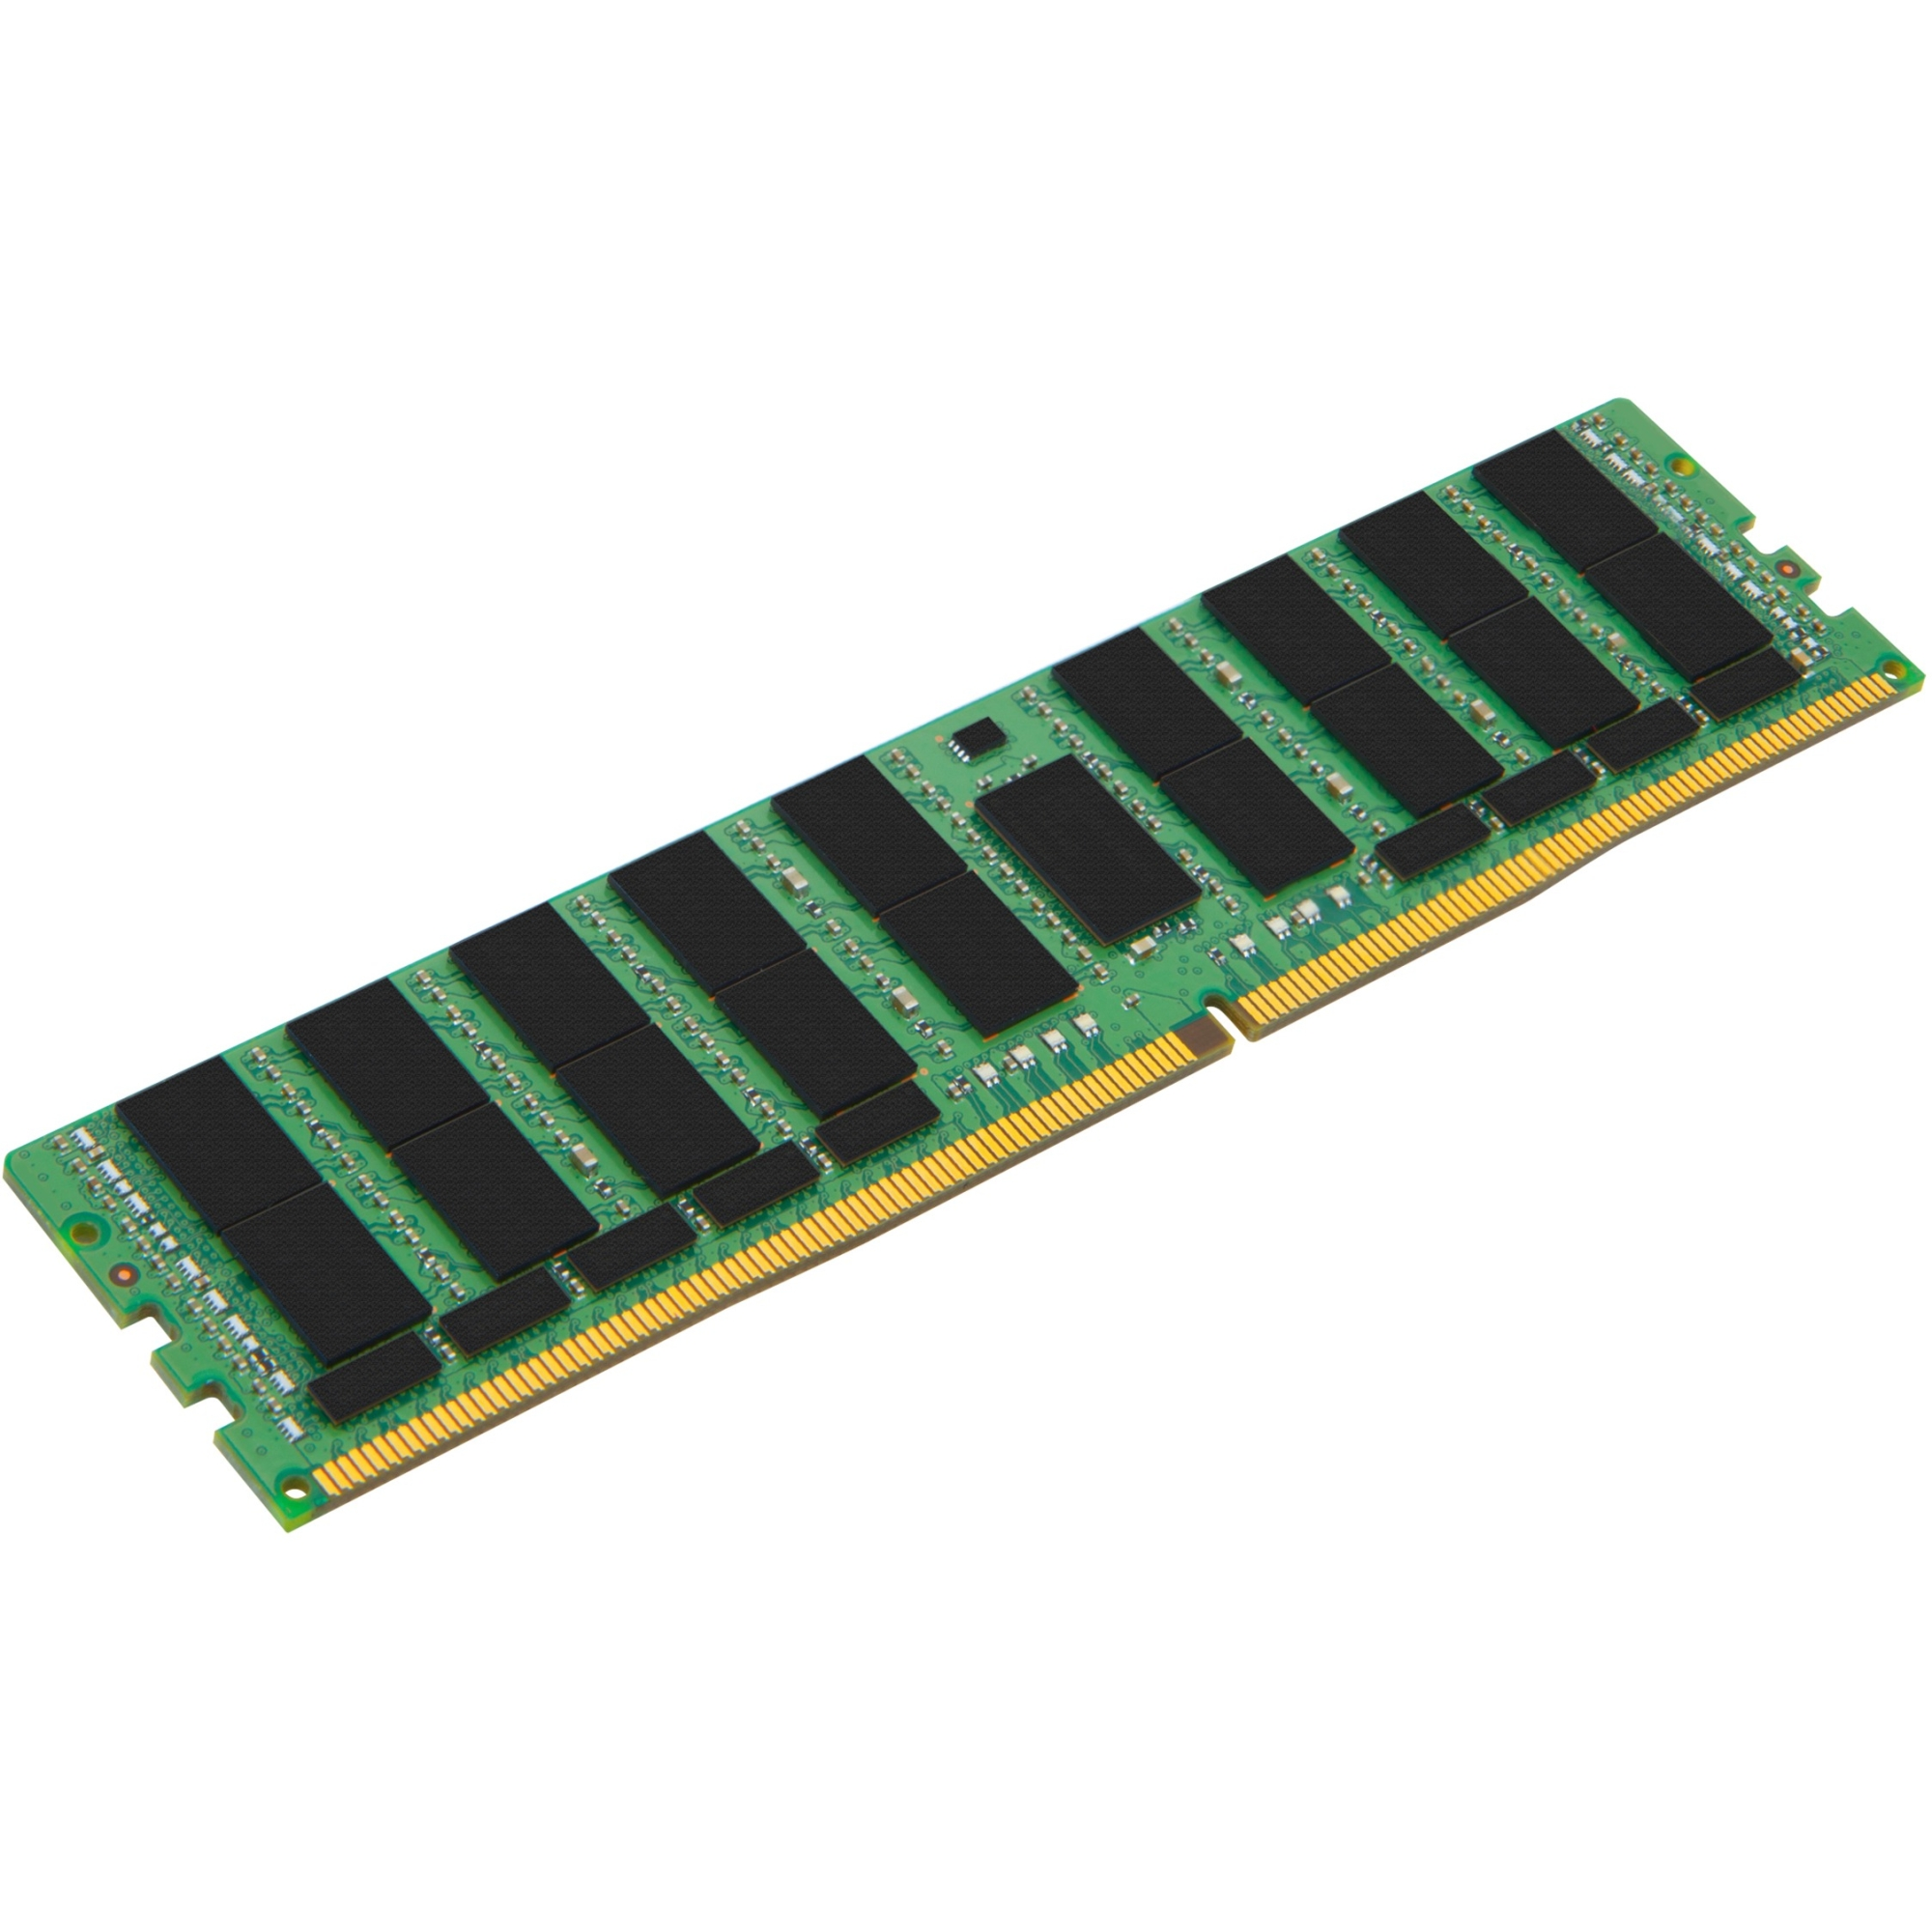 Kingston 1 x 32GB DDR4 2133 (PC4 2133) SDRAM D4G72M152Q